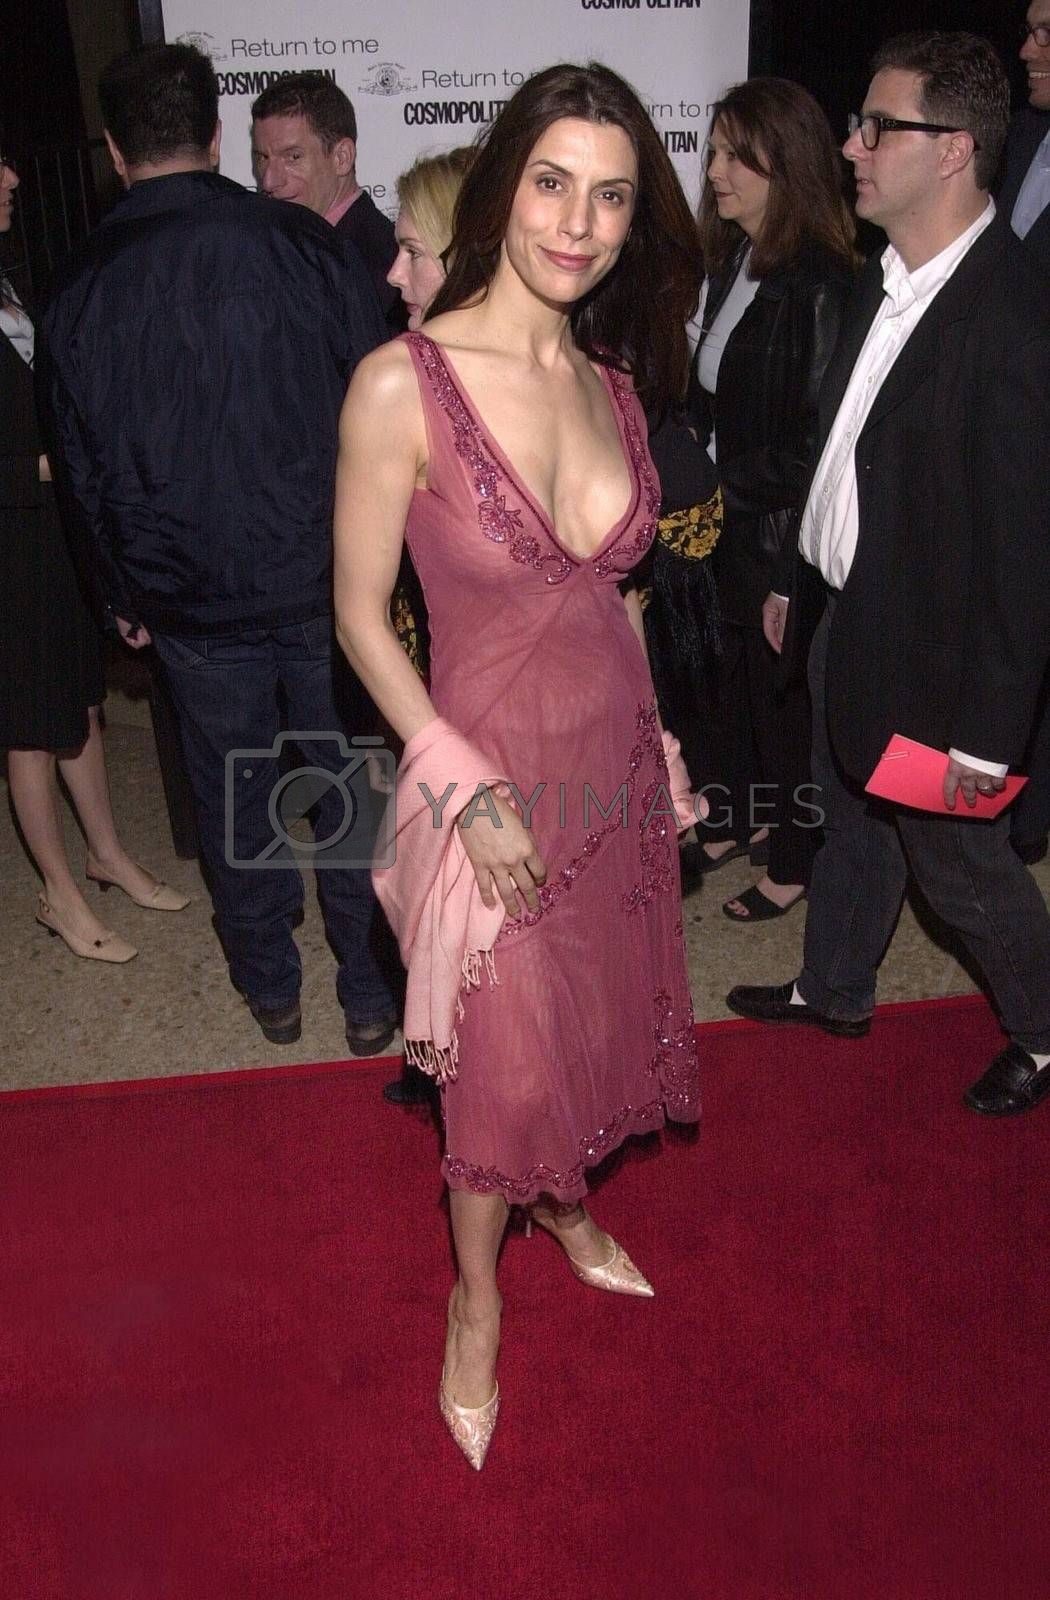 """Jo Champa at the premiere of MGM's """"RETURN TO ME"""" in Century City, 04-03-00"""